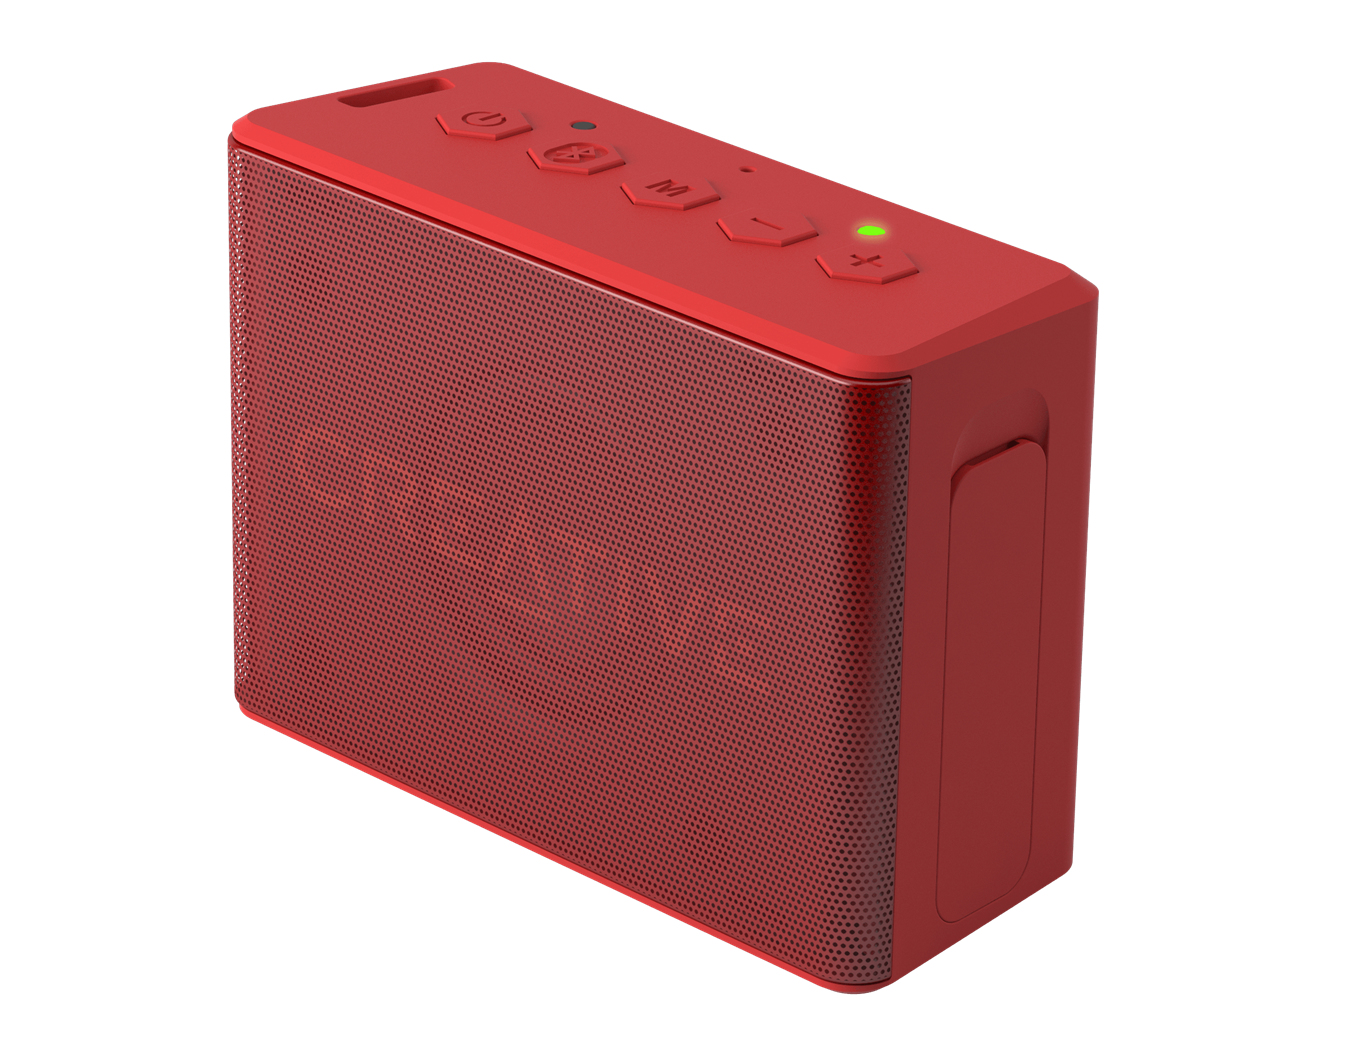 CREATIVE LABS 51MF8250AA001 MUVO 2C STEREO PORTABLE SPEAKER RED